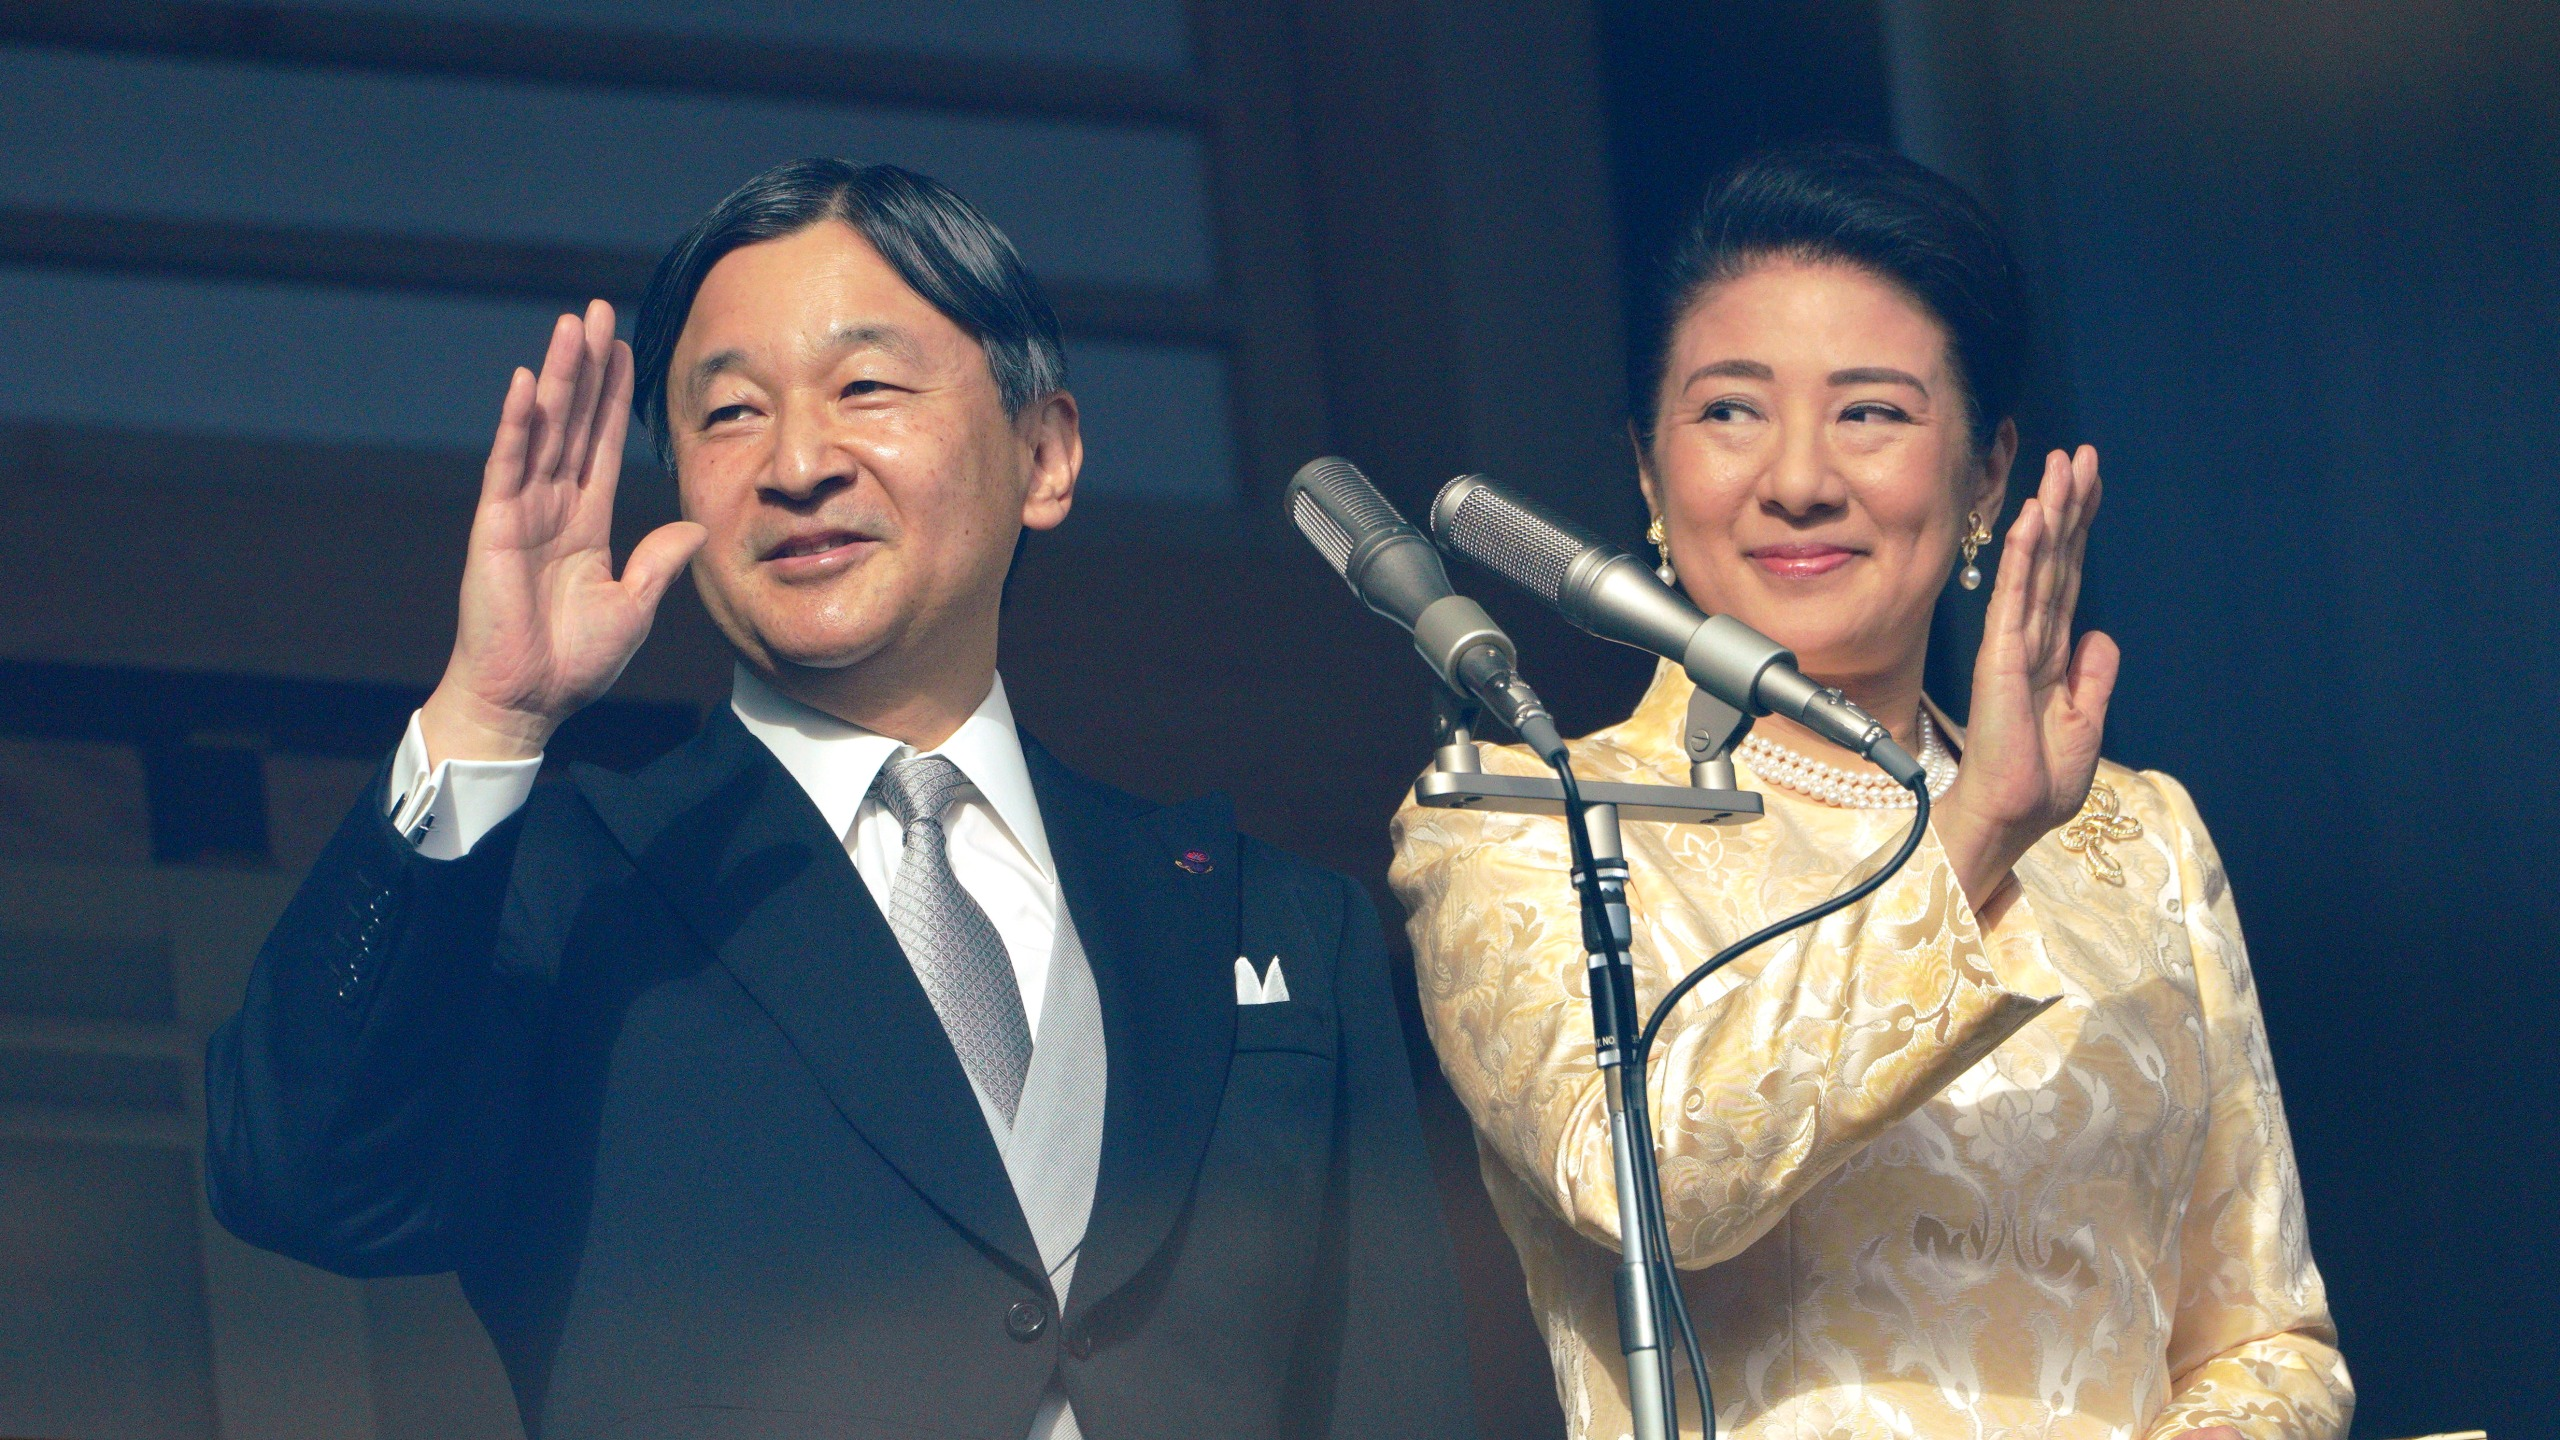 Japan's emperor waves to crowds in 1st New Year's greeting ...